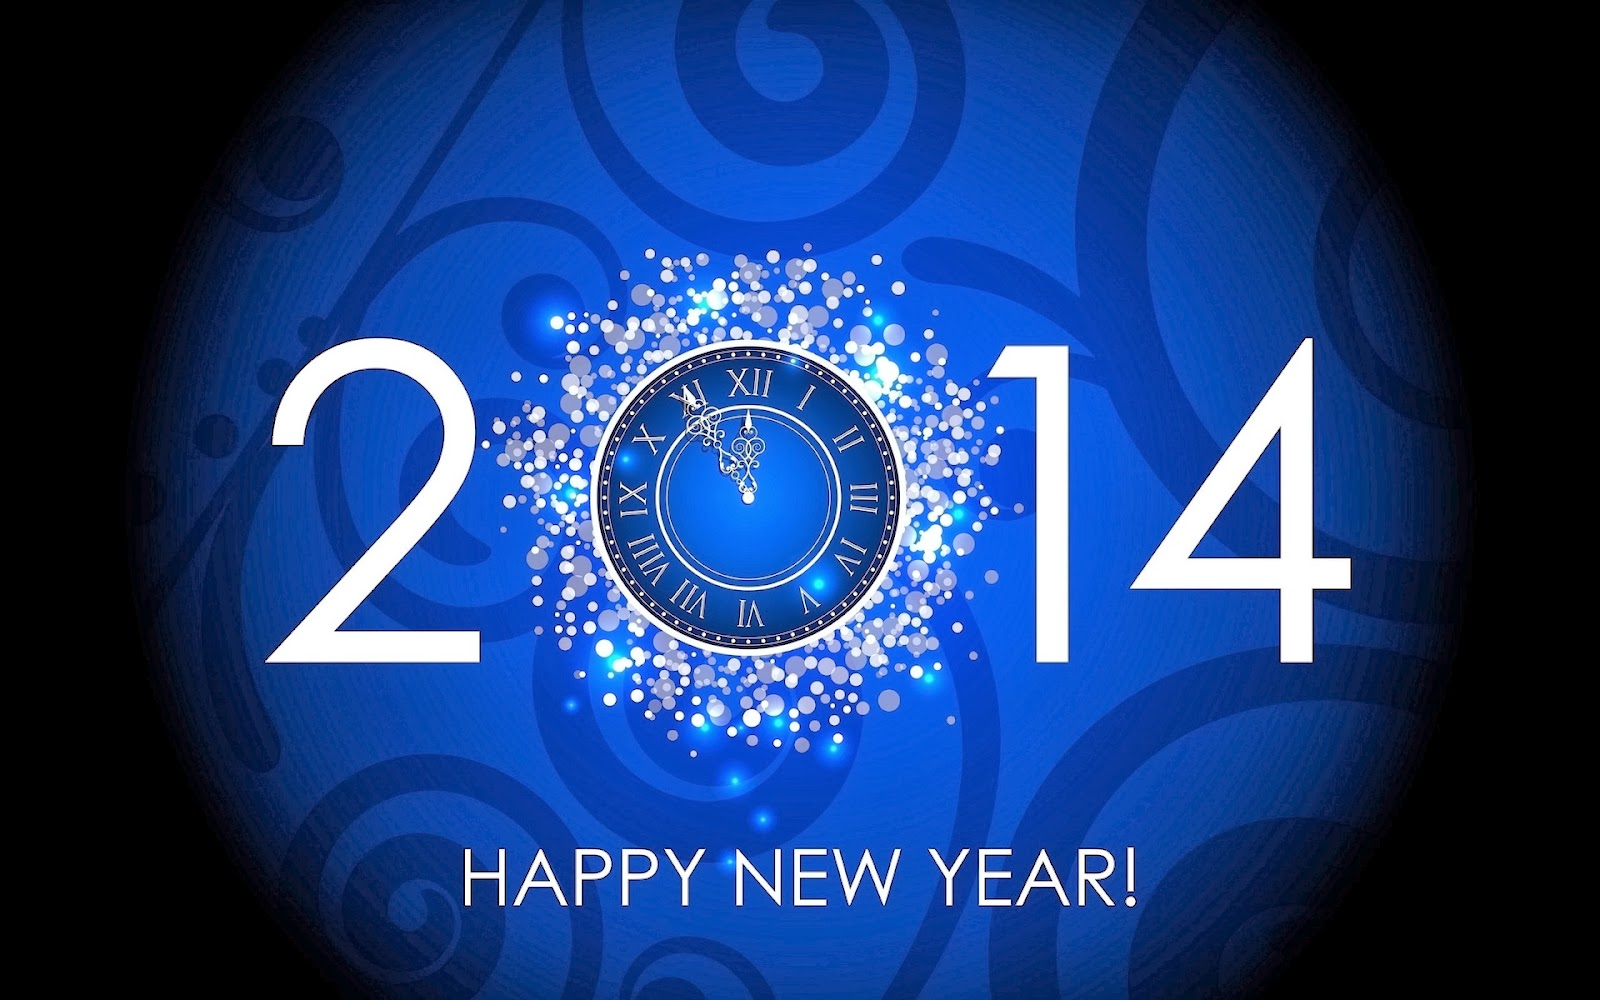 New Year Wishes Quotes 2014 Beautiful Happy New Year Quotes. 1600 x 1000.Happy New Year 2014  Quotes Wishes Hindi